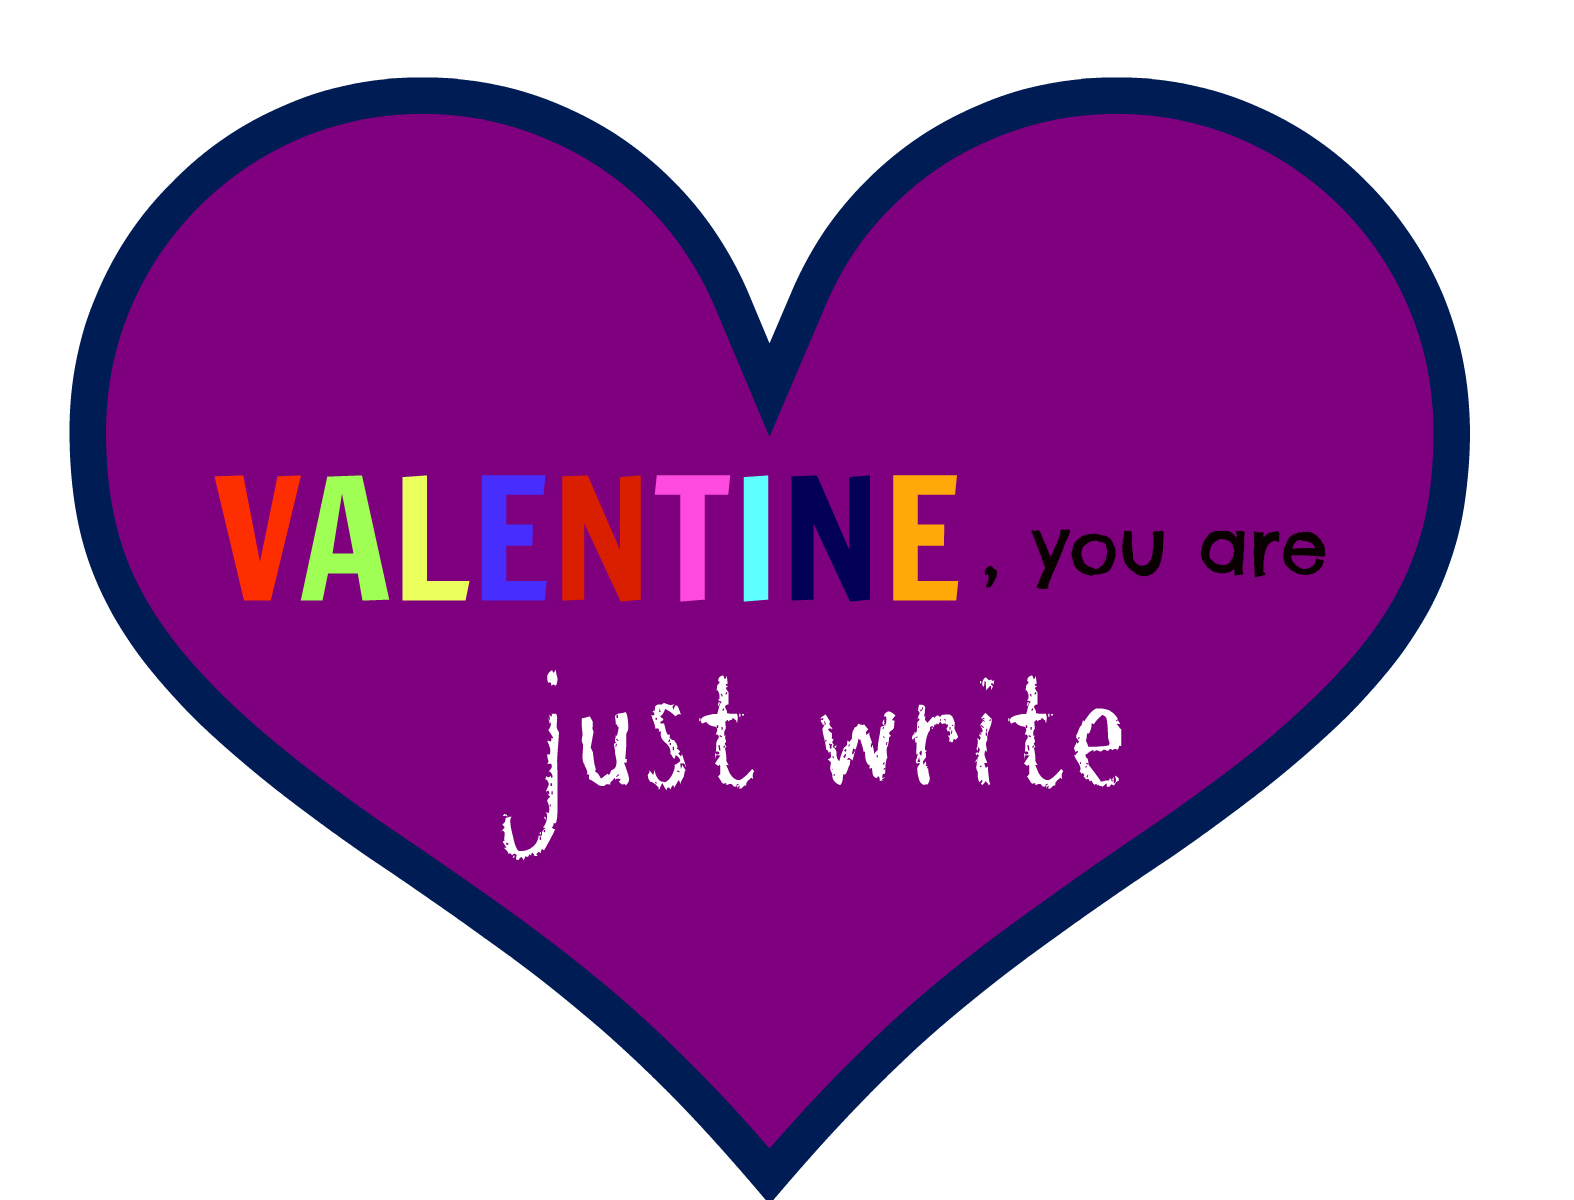 just write You are Just Write  Non Candy Valentines Day Idea